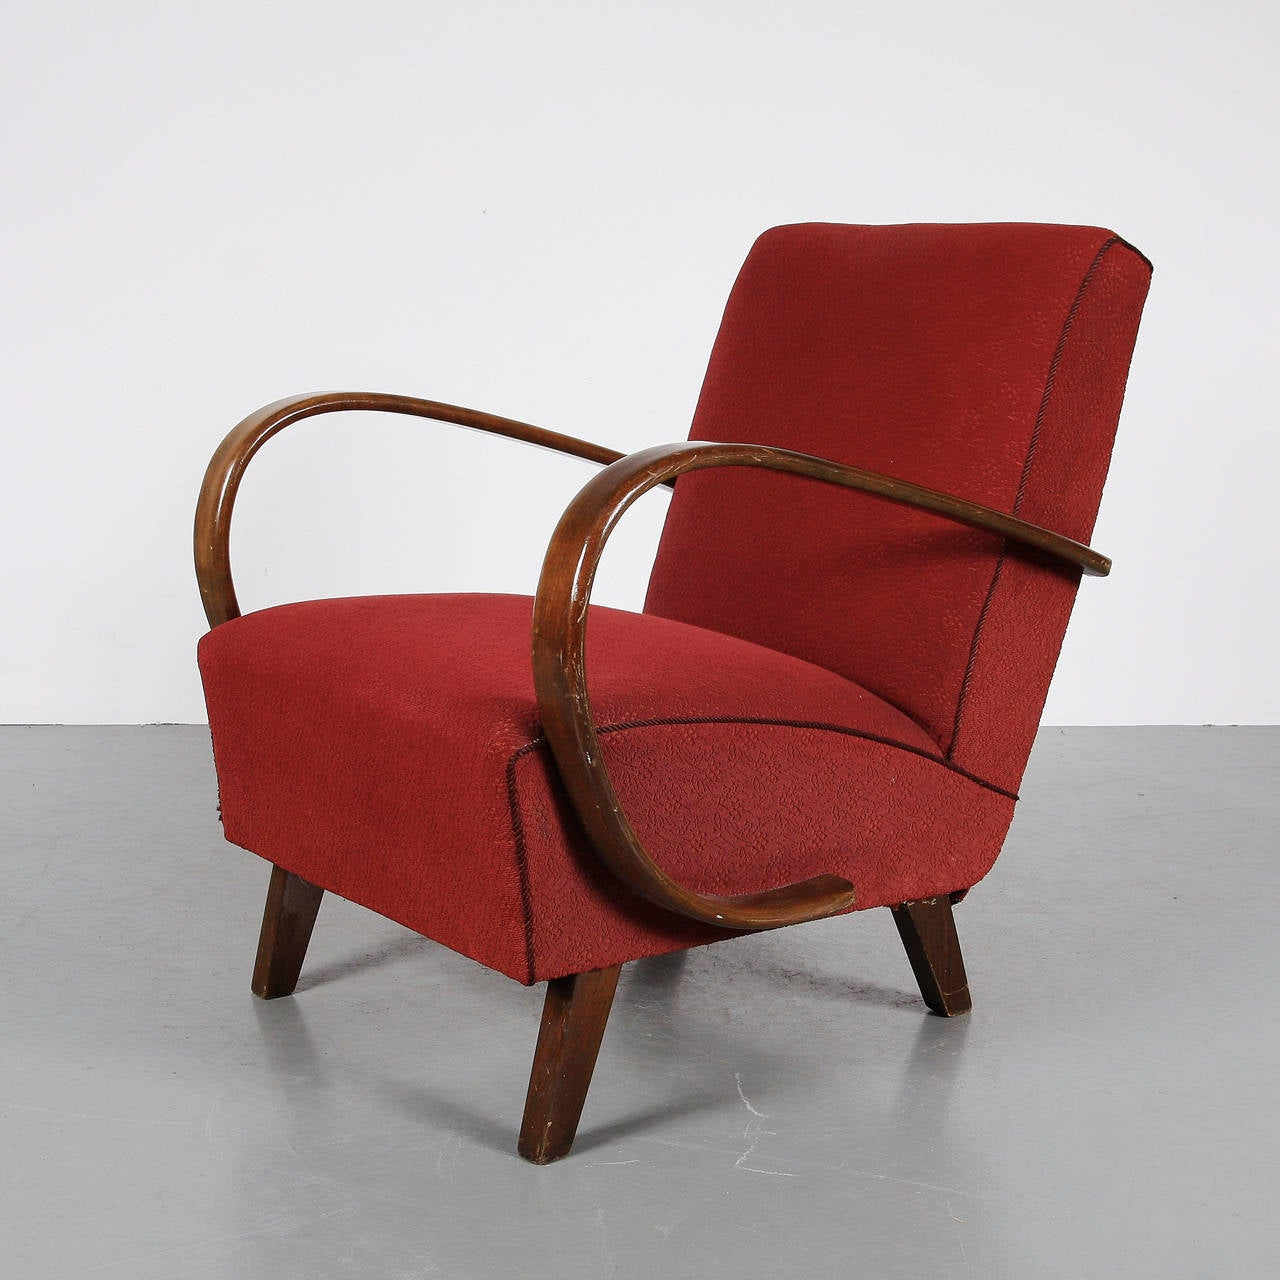 pair of jindrich halabala armchairs circa 1930 for sale at 1stdibs. Black Bedroom Furniture Sets. Home Design Ideas